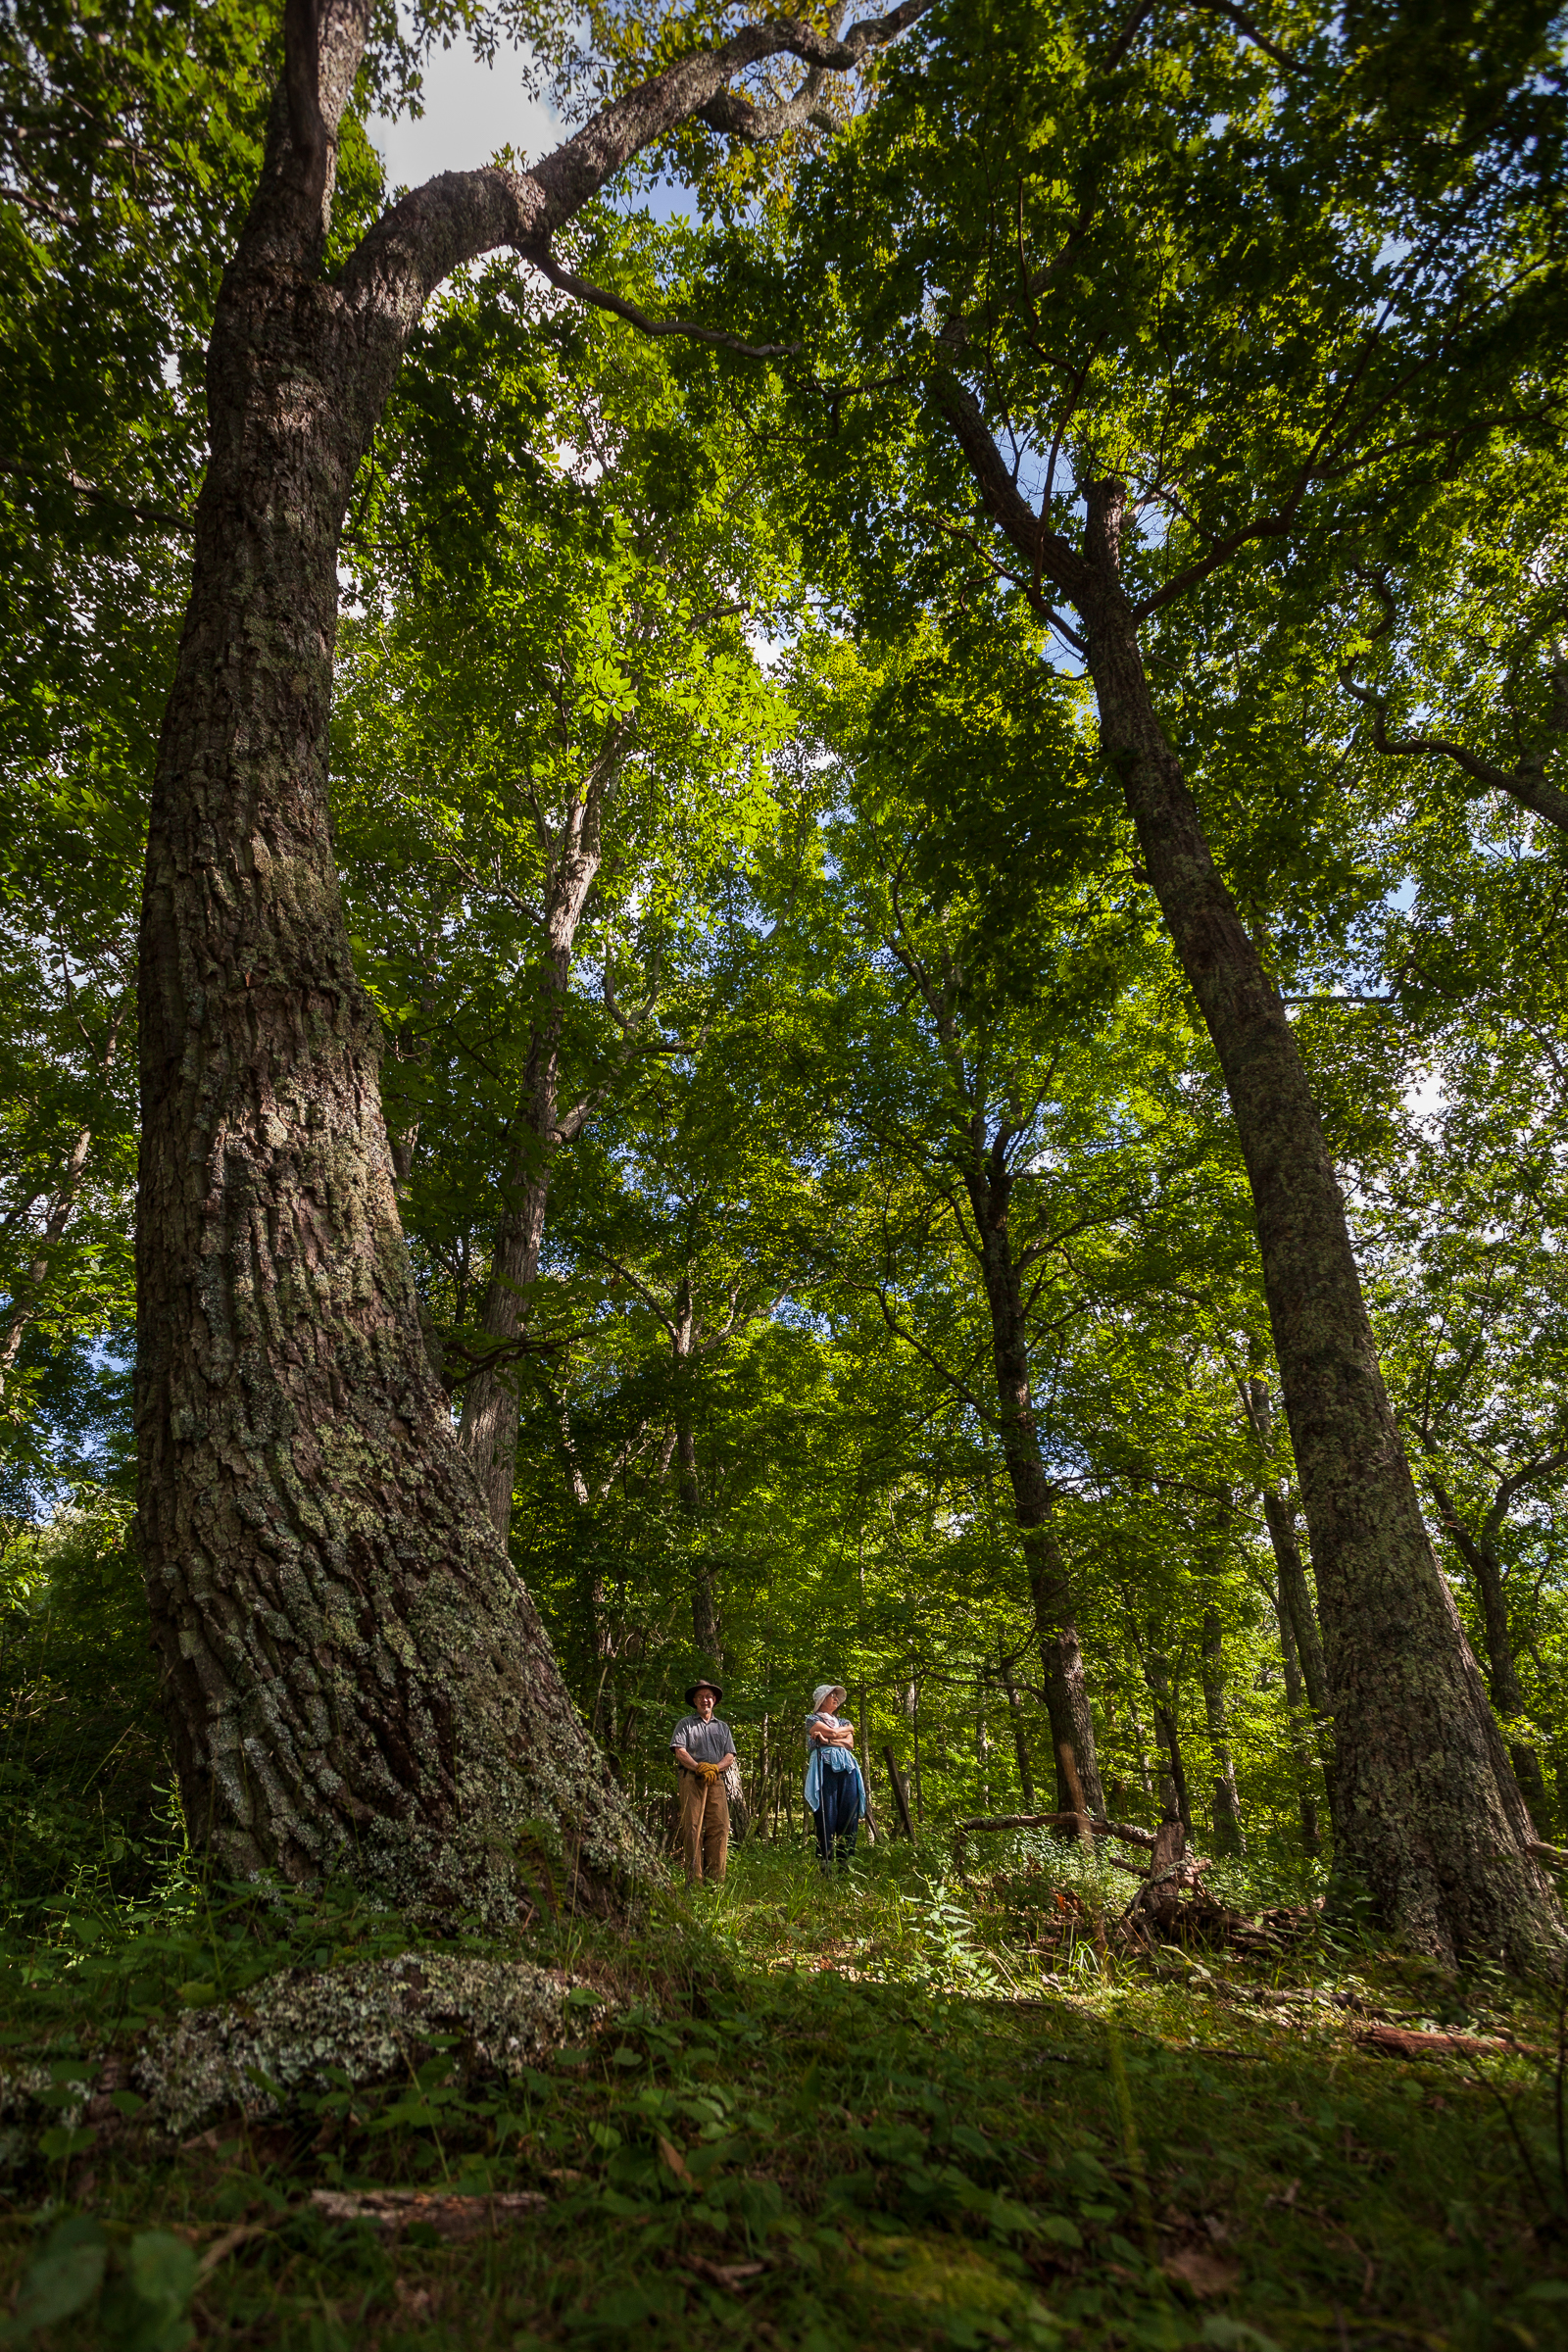 Bill and Lynn Limpert stand by an old-growth maple on their property in Little Valley, Virginia. Photograph by Steven David Johnson